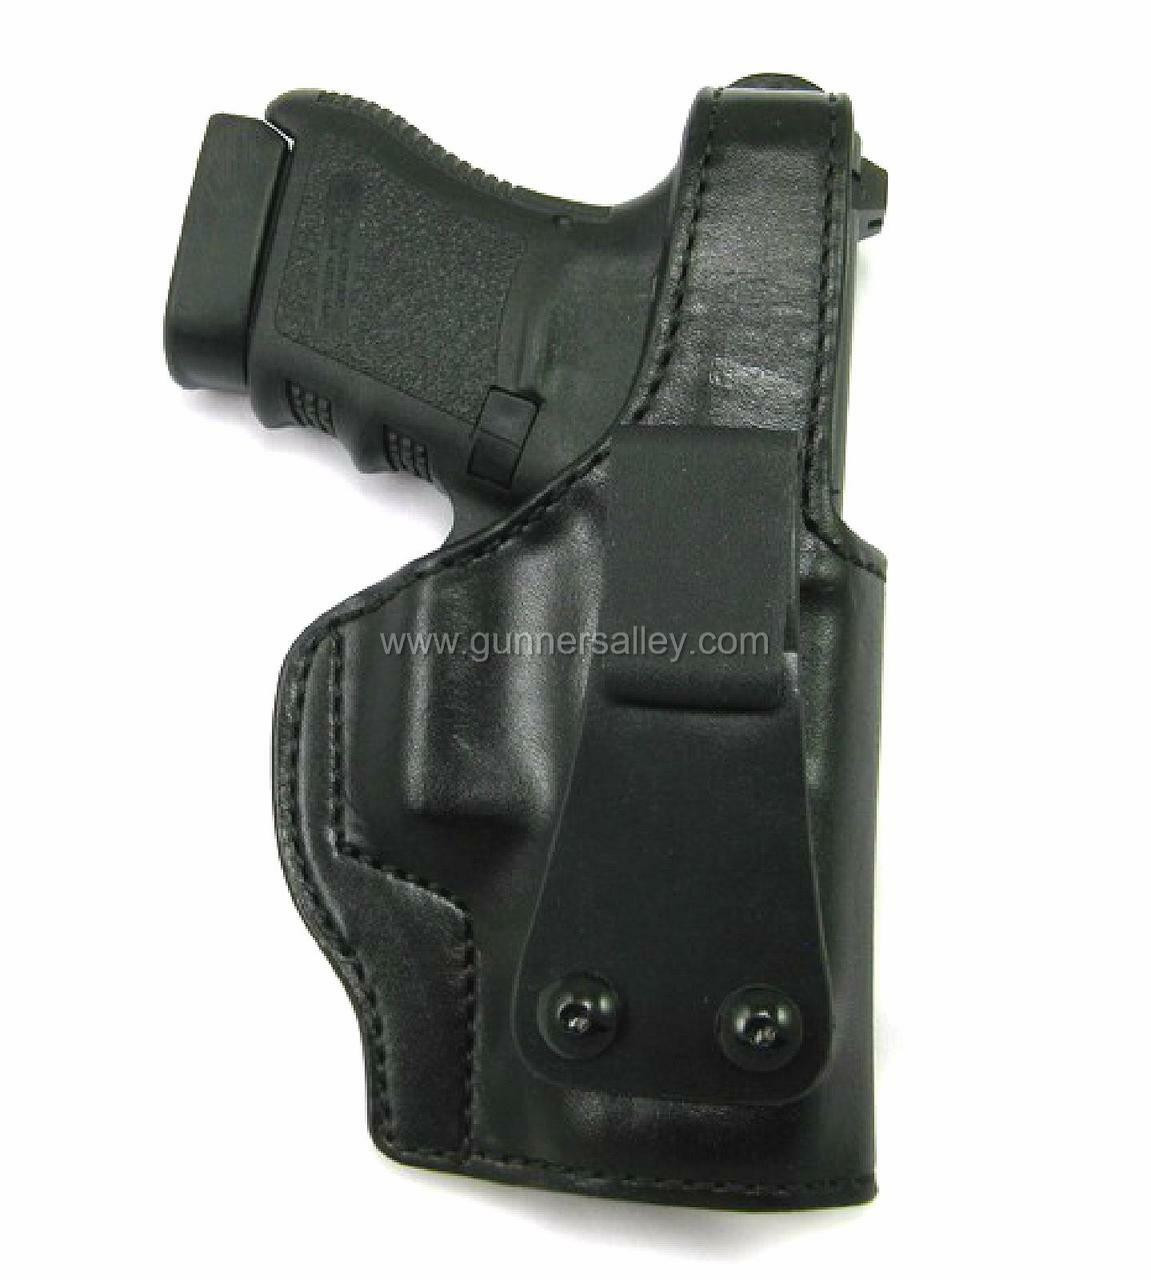 Front View - Shown with a Glock 30 for Demonstration Purposes